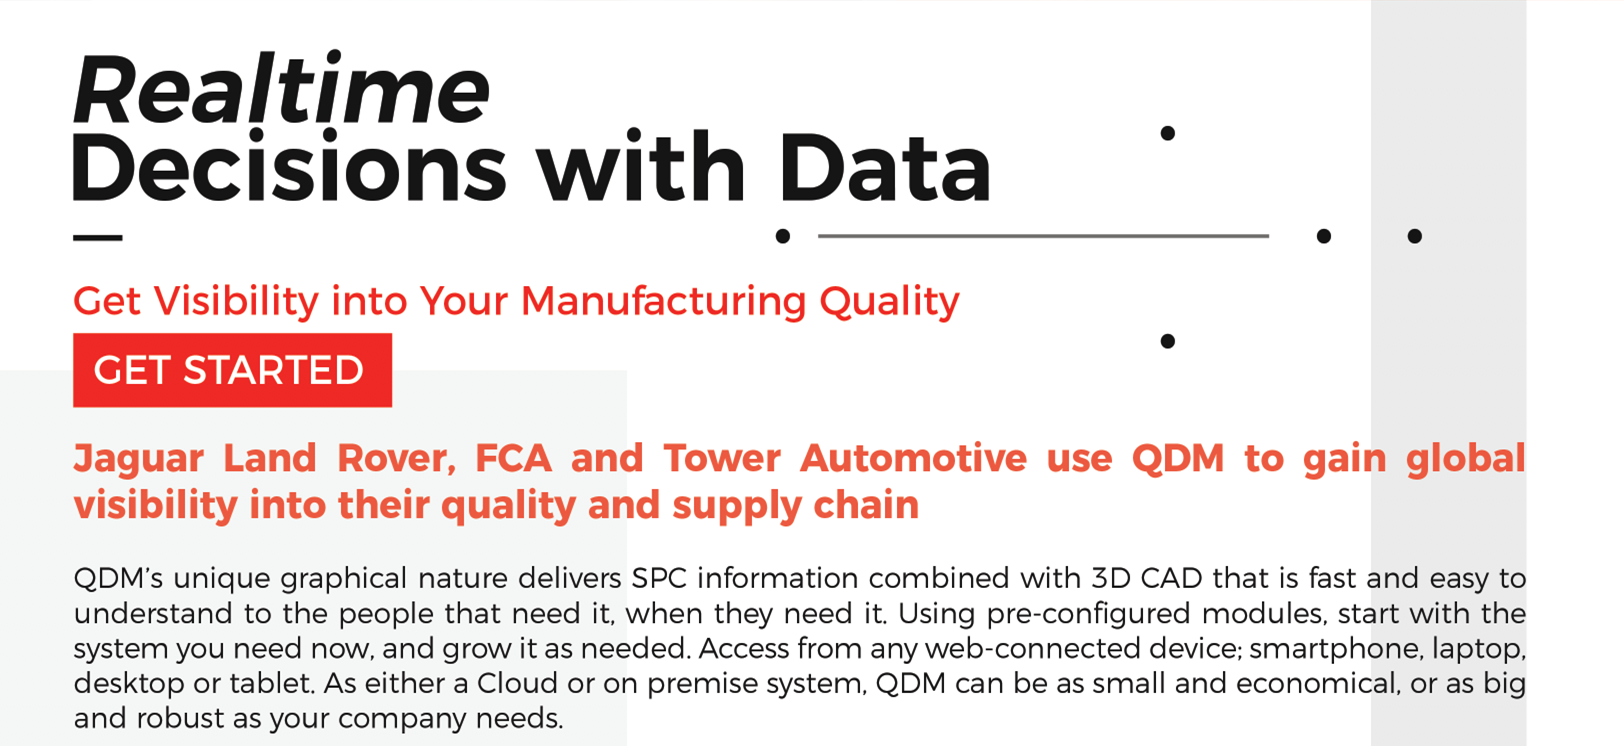 dcs-qdm-realtime-decision-making